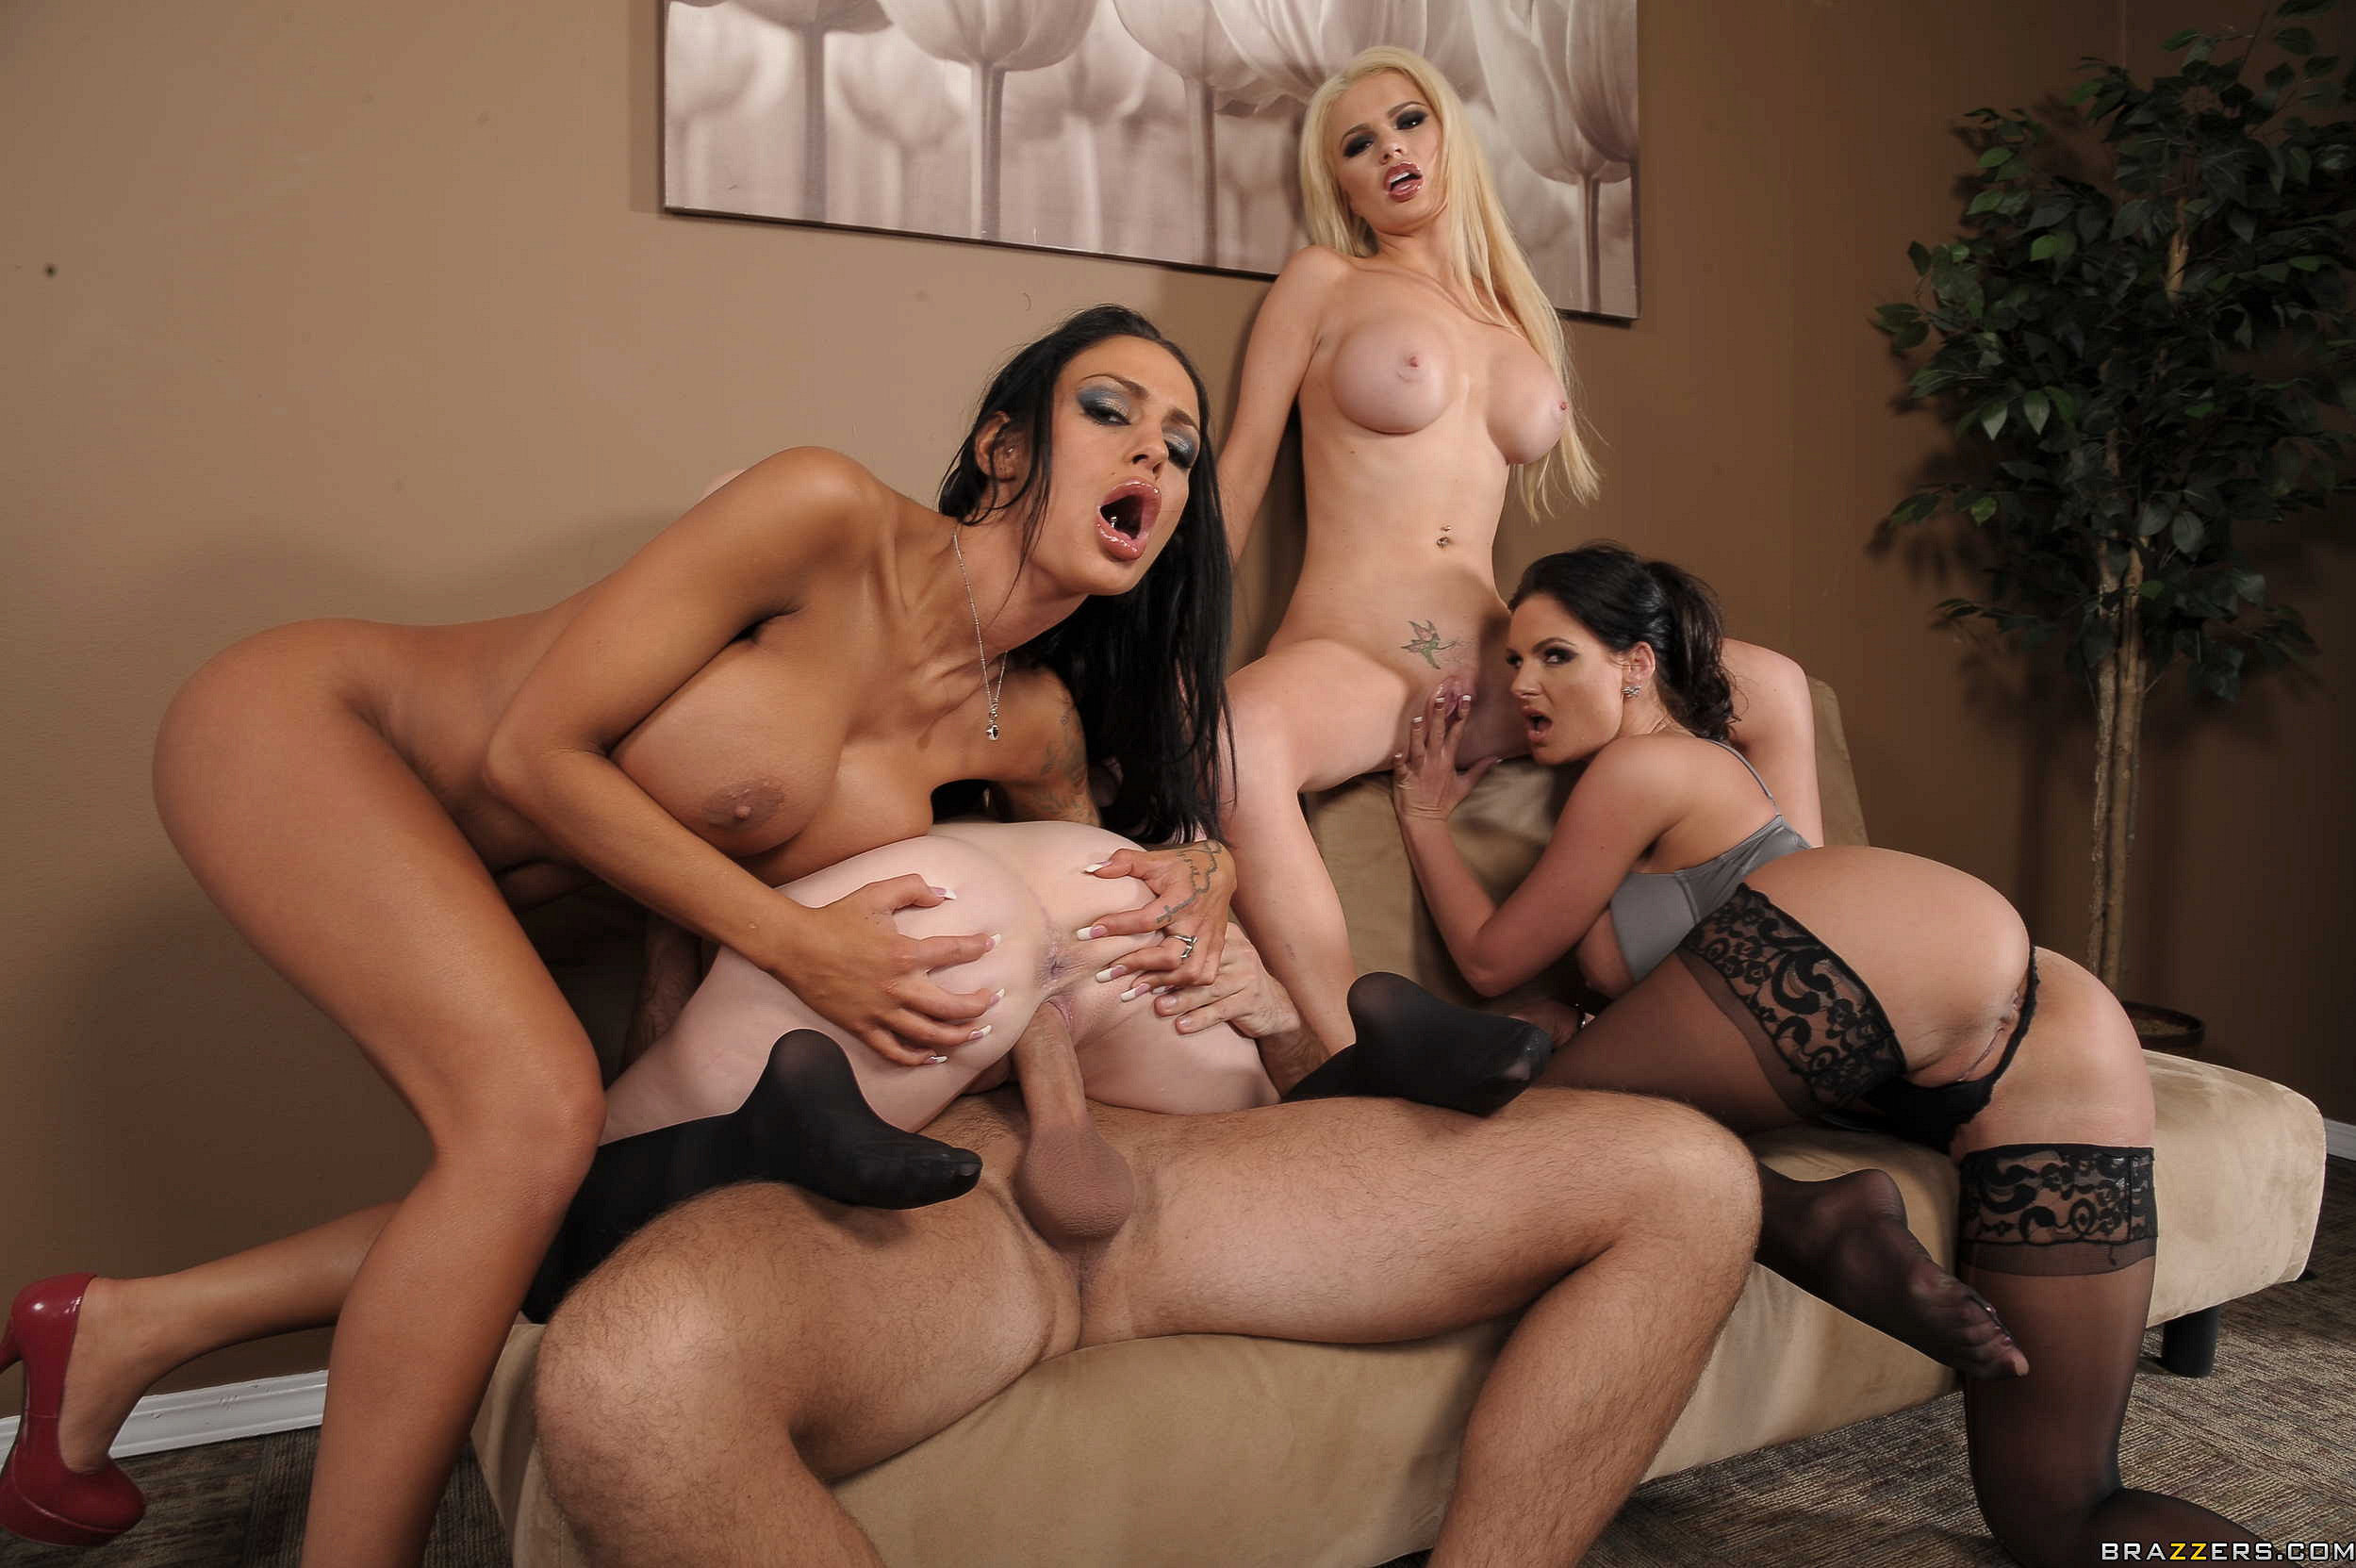 group-sex-penthouse-black-girl-naked-have-sex-lucas